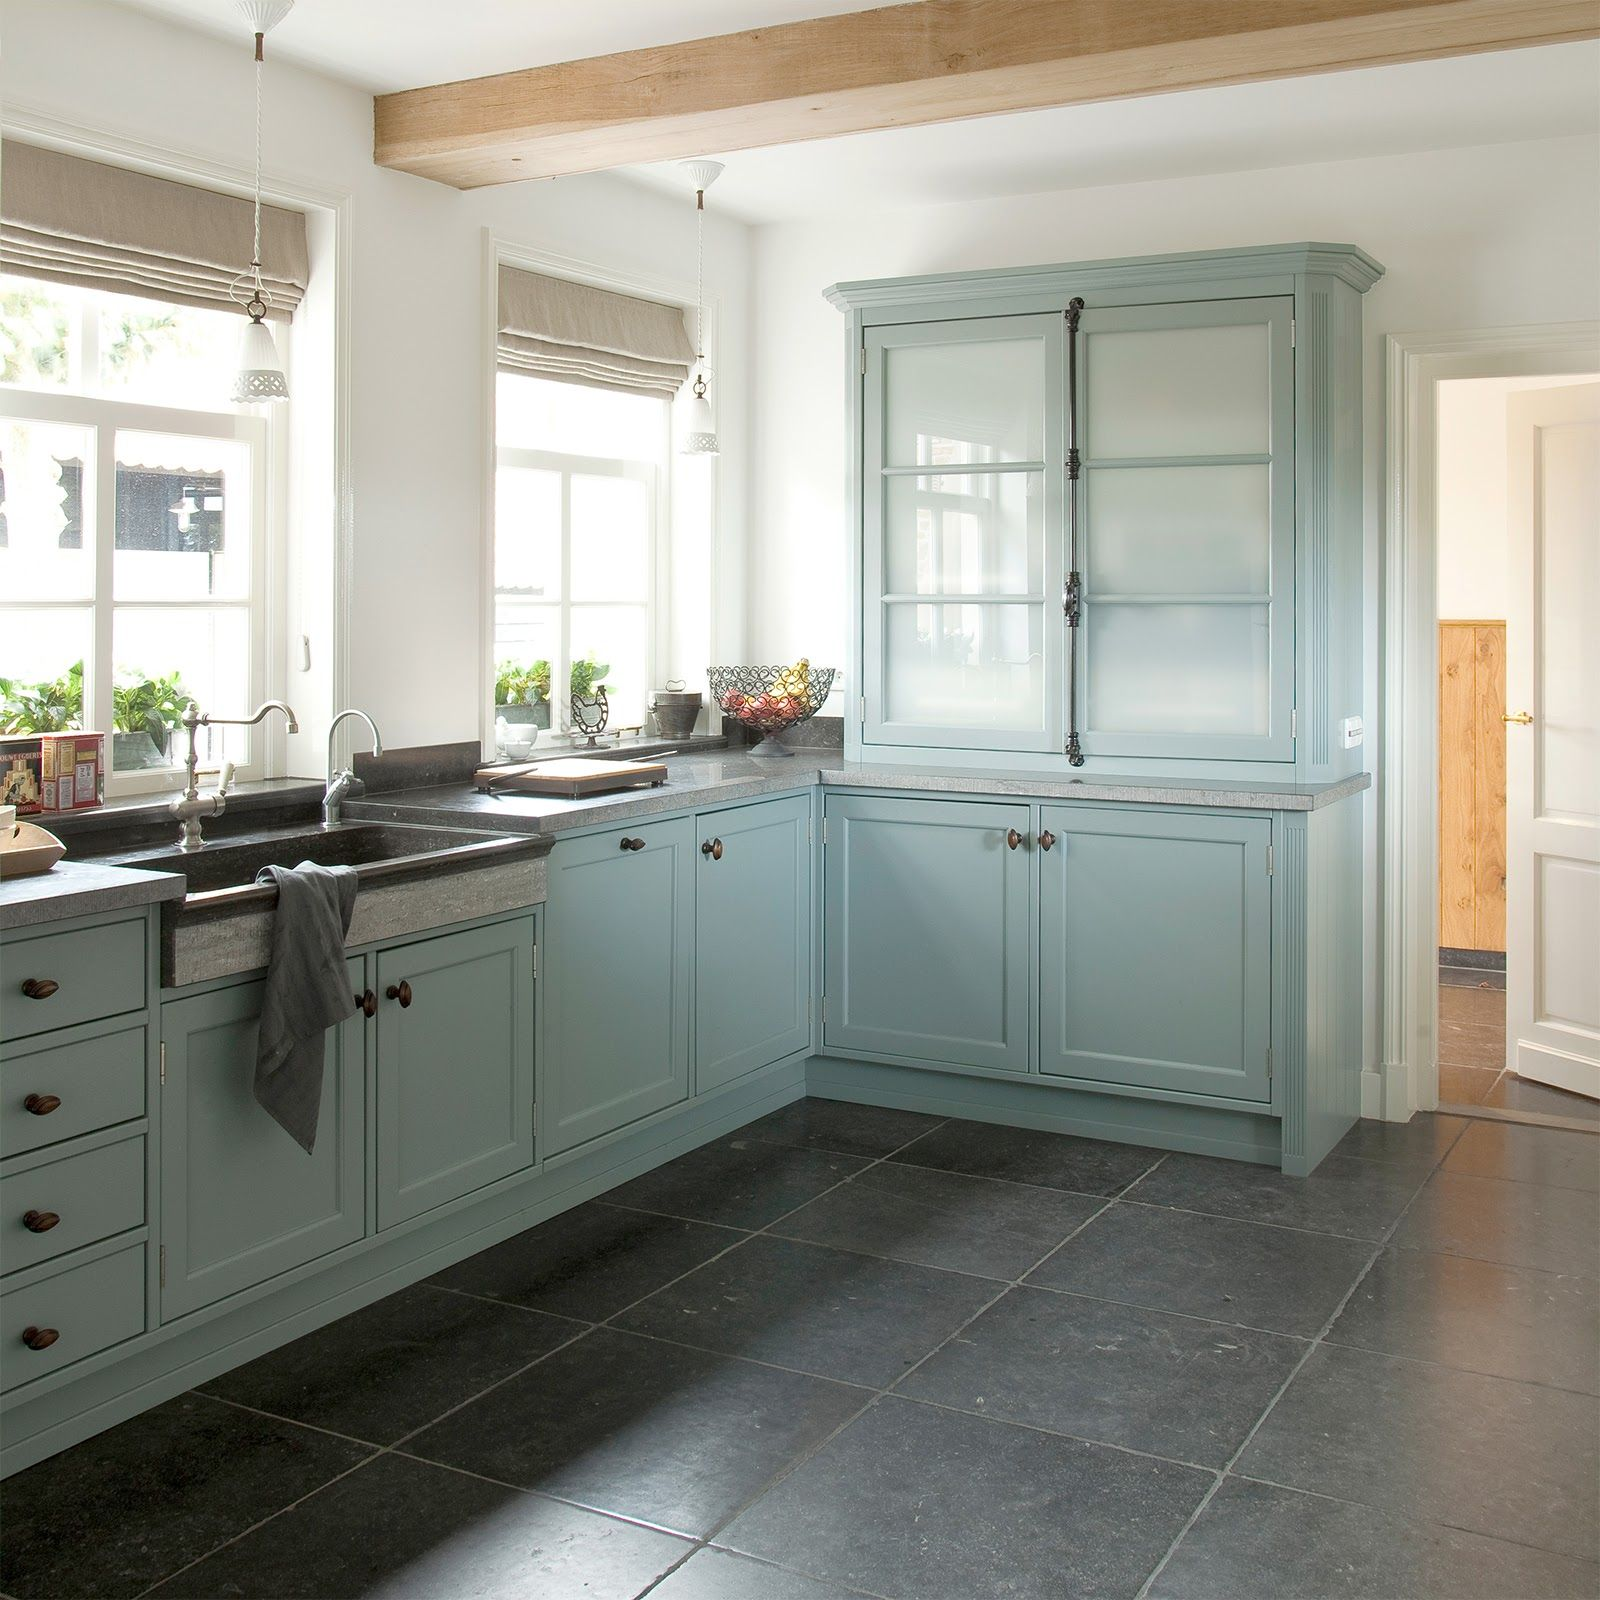 Tasty turquoise kitchens love the large grey slate tiles on the love the large grey slate tiles on the floor dailygadgetfo Image collections